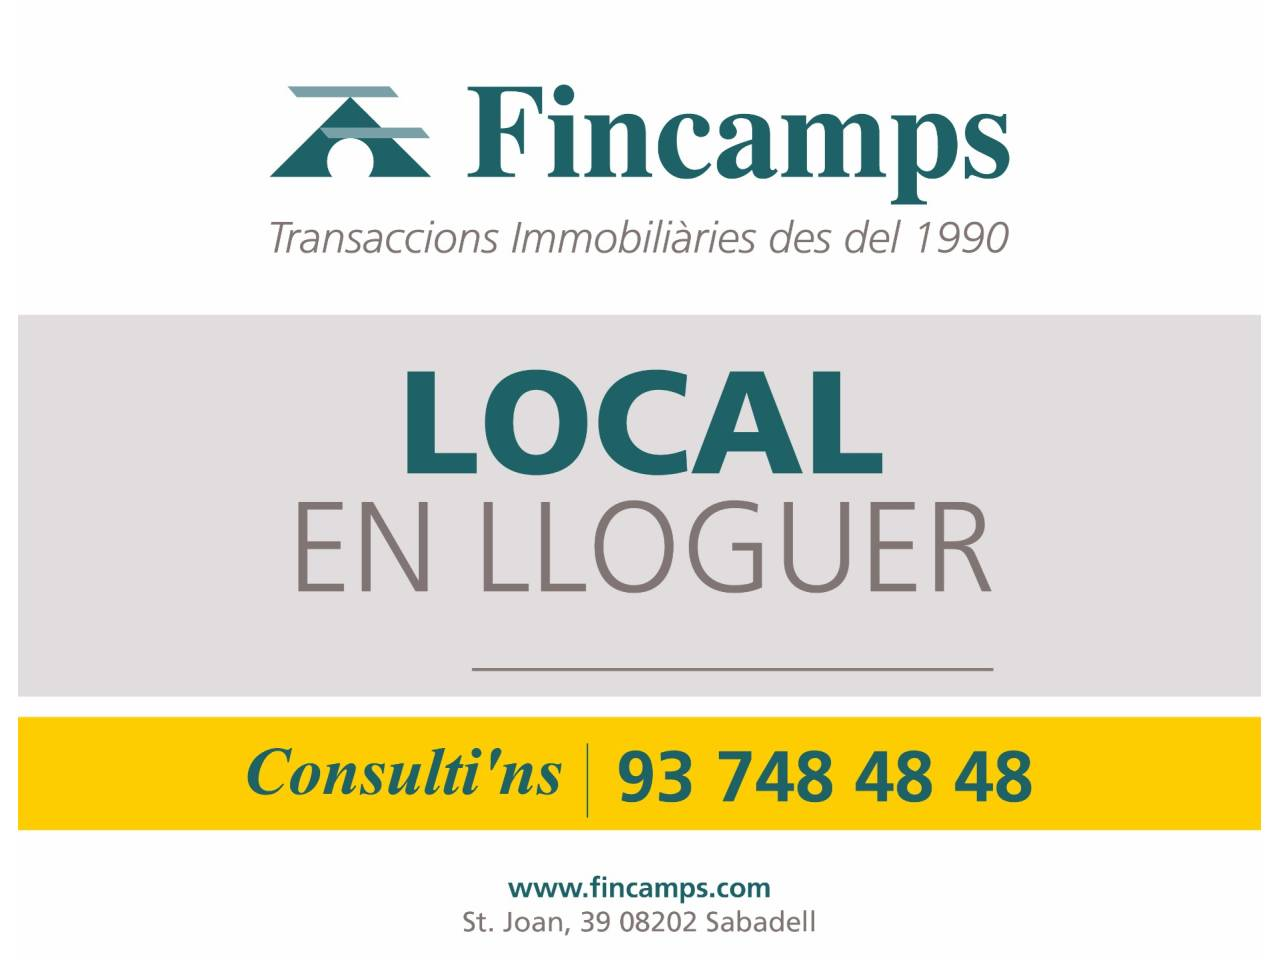 Fincamps for Oficina trafico sabadell